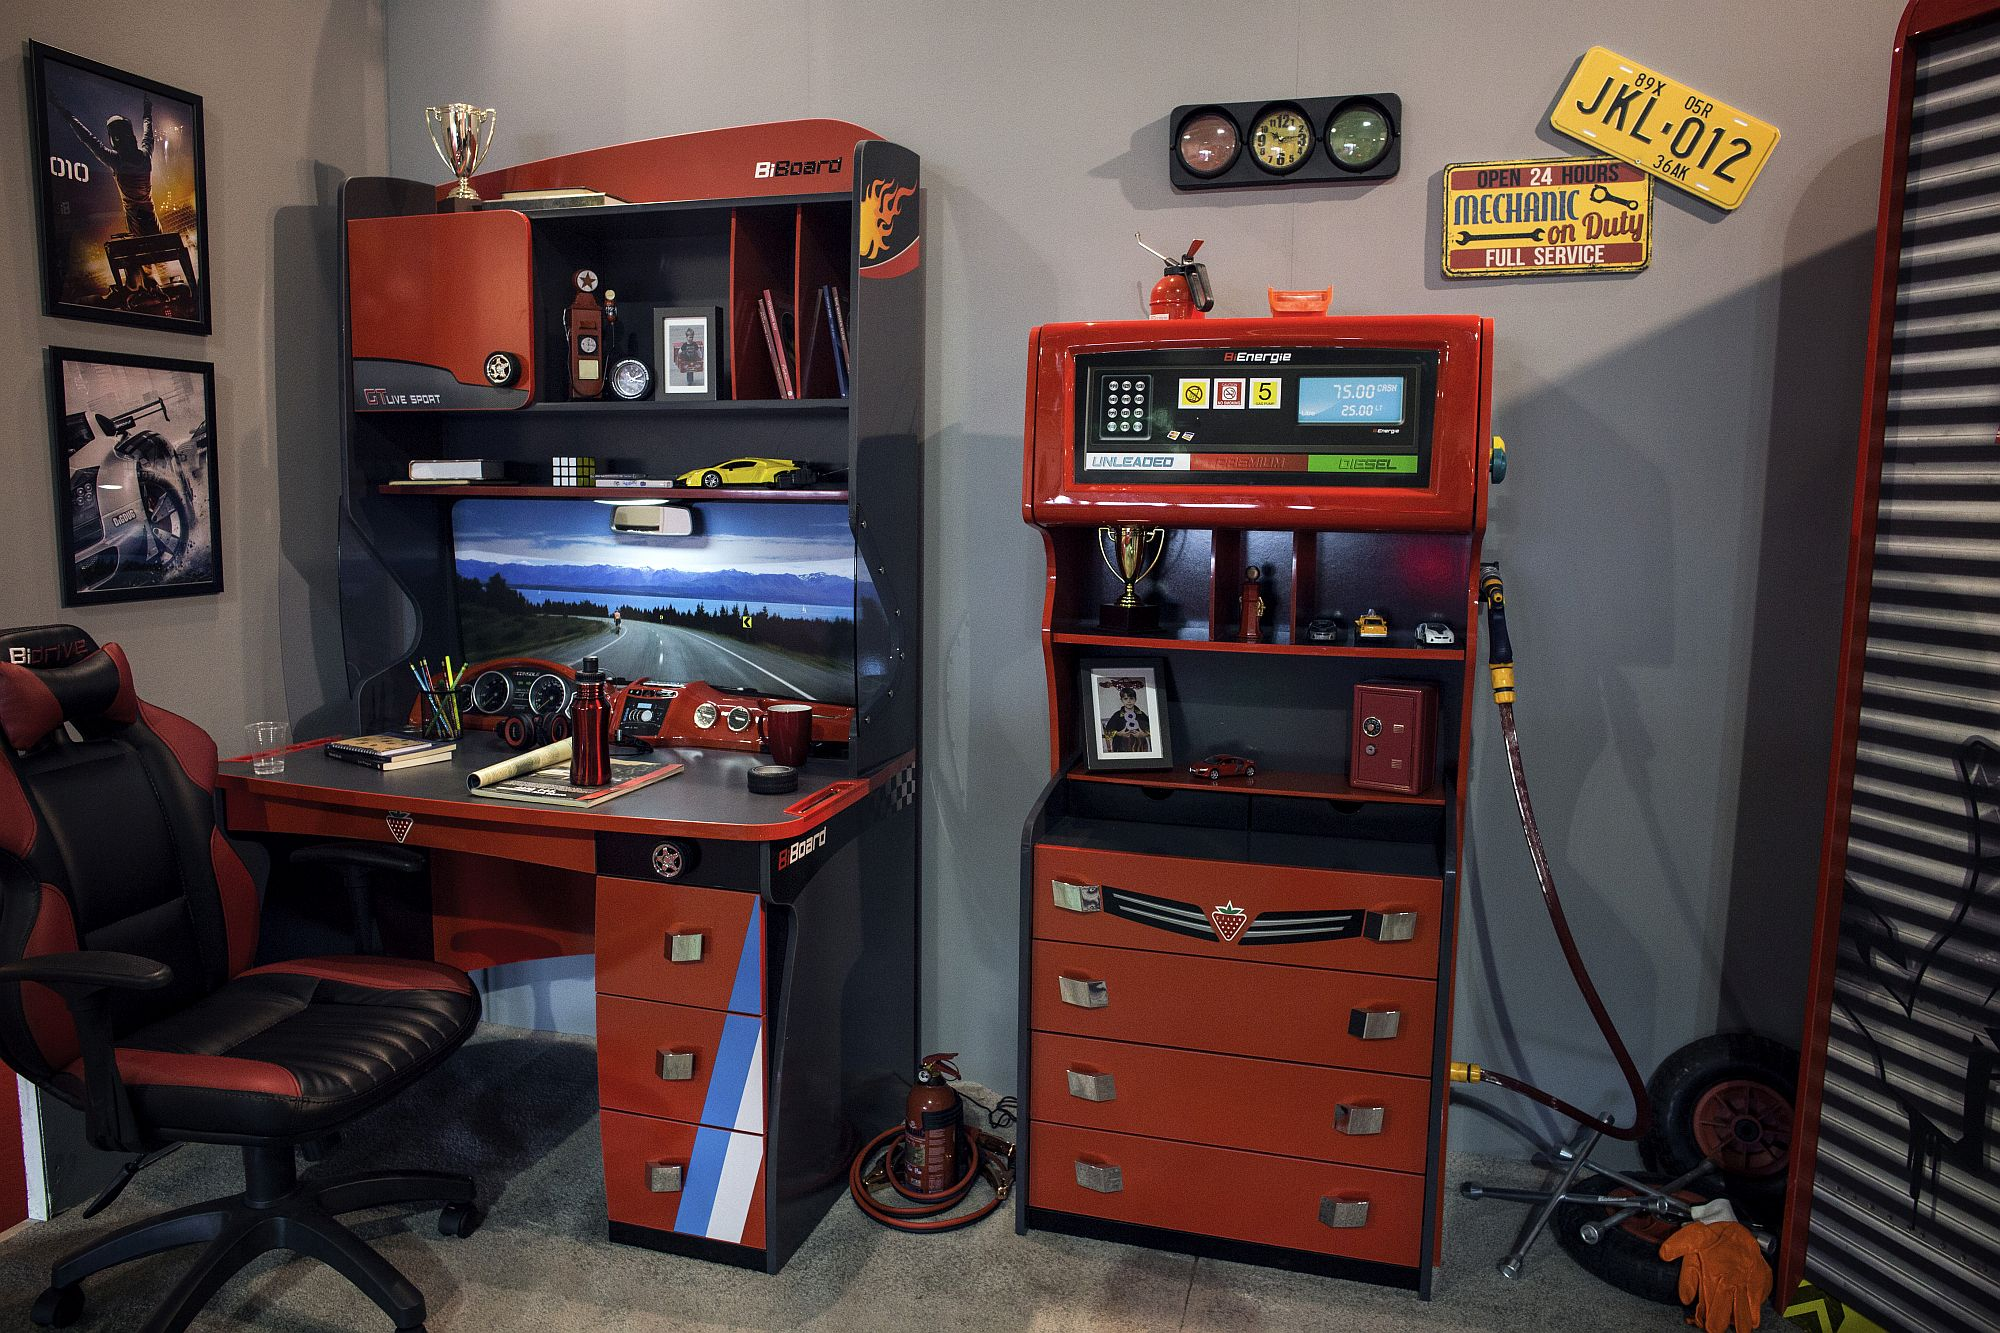 Retro-style-homework-zone-borrows-from-the-form-of-arcade-games